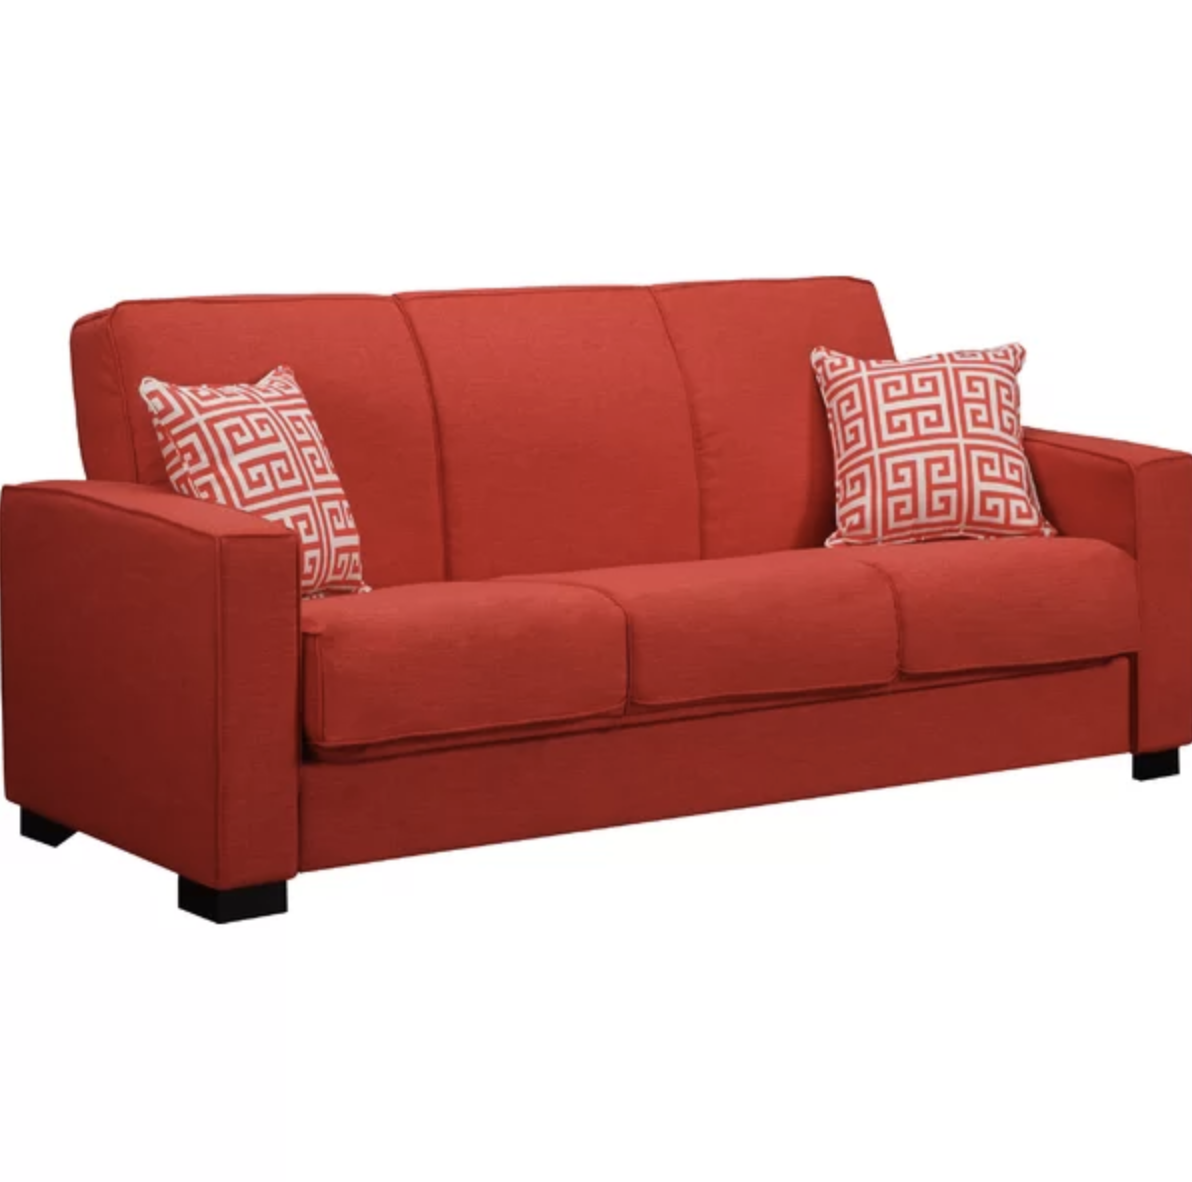 swiger-red-sofa